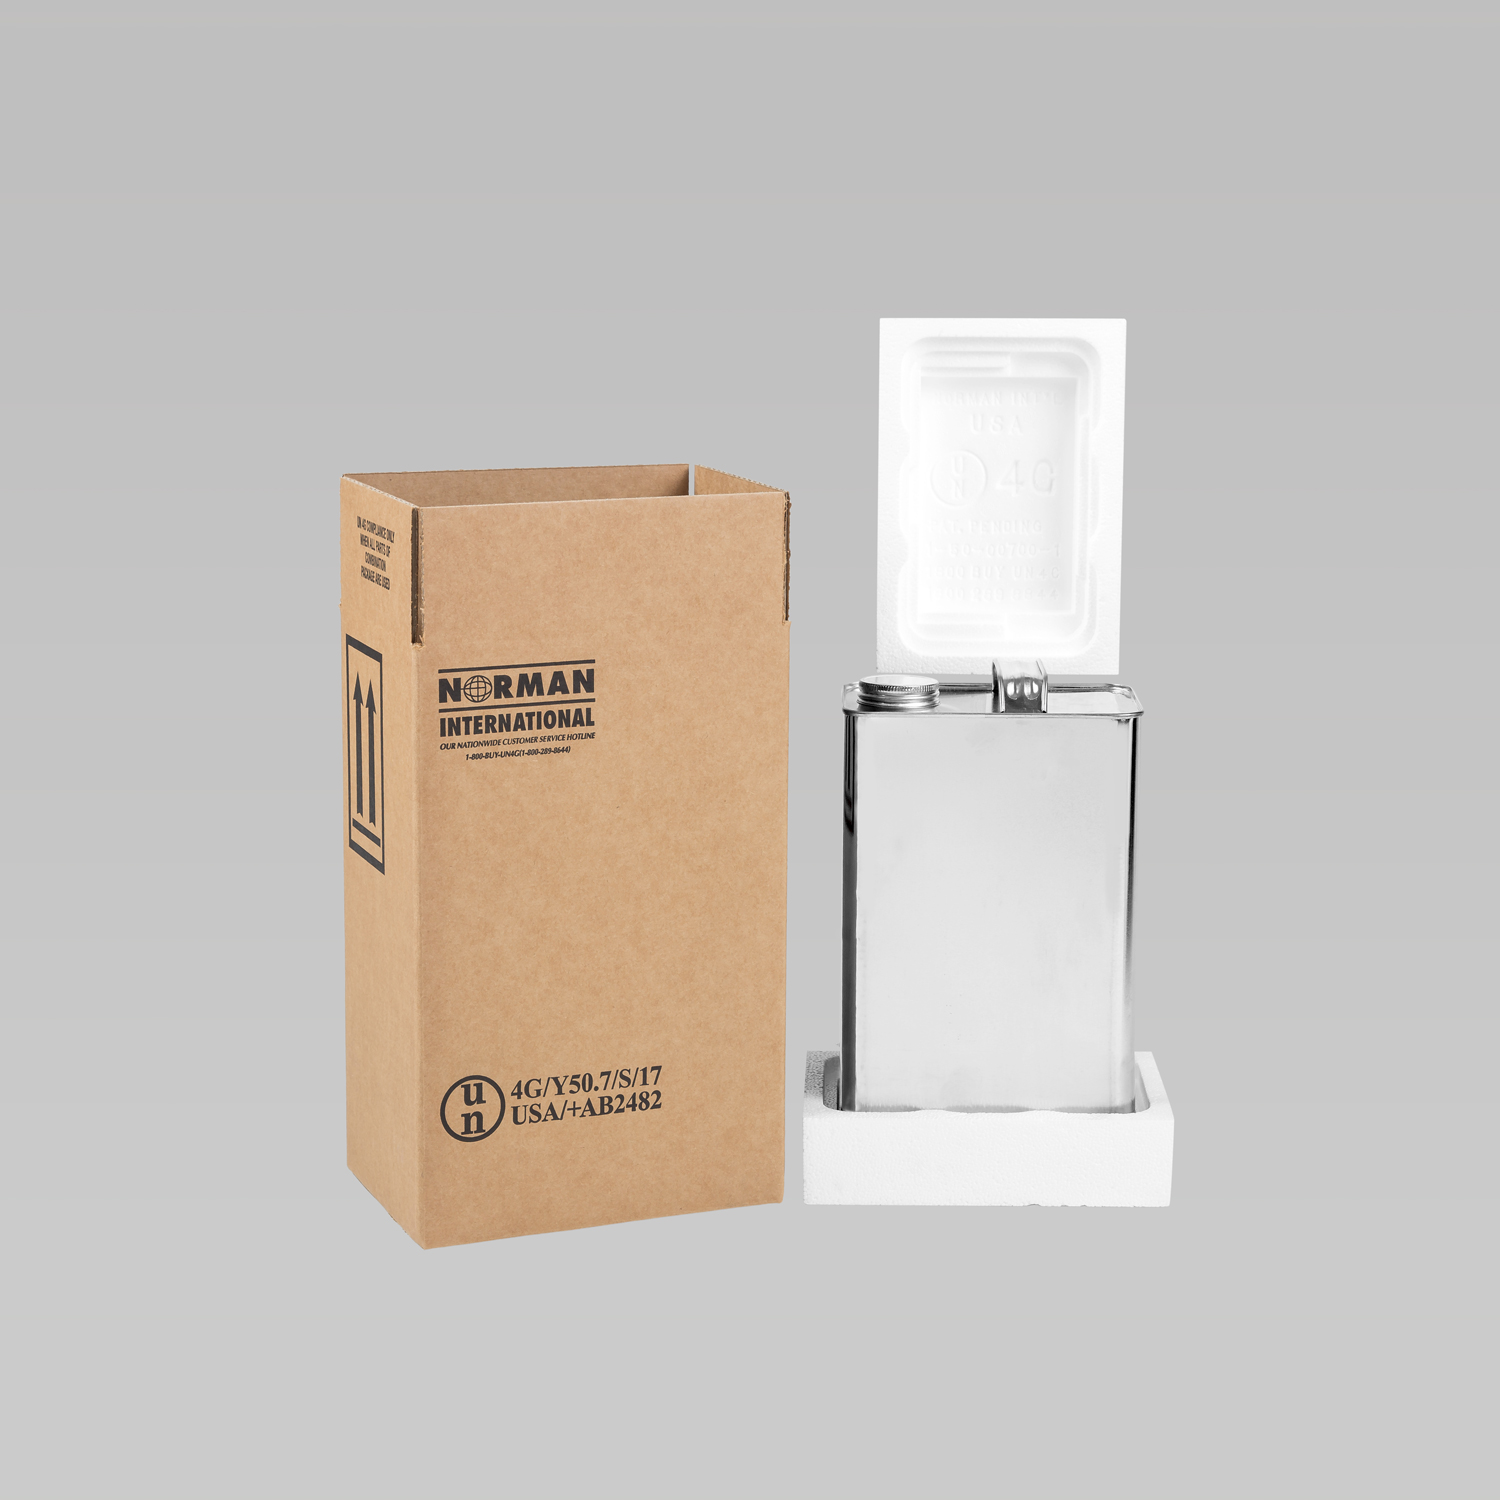 1e5bb7ae9c5 Hazmat packaging boxes and shipping containers